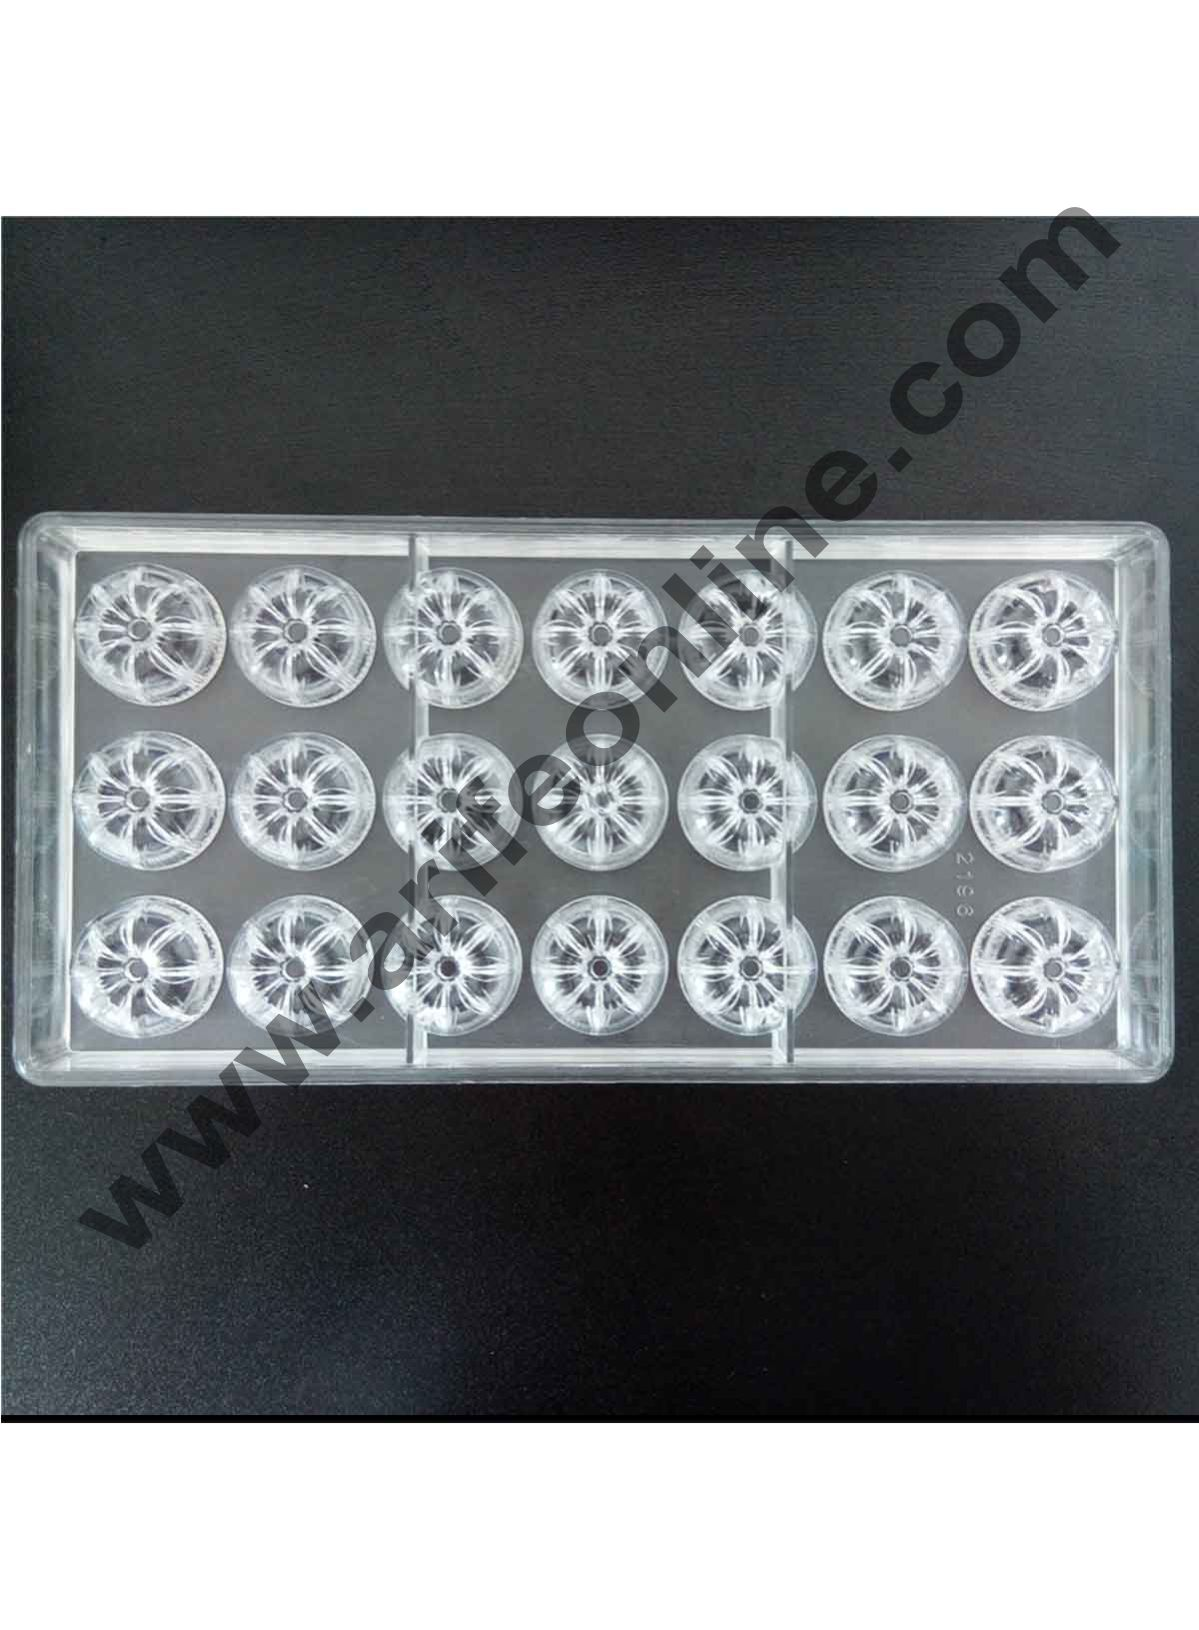 Cake Decor 21 Cavity New Design Flower Moon Cake Shape Hard Plastic Inject Polycarbonate PC Cake Chocolate Mould Mold